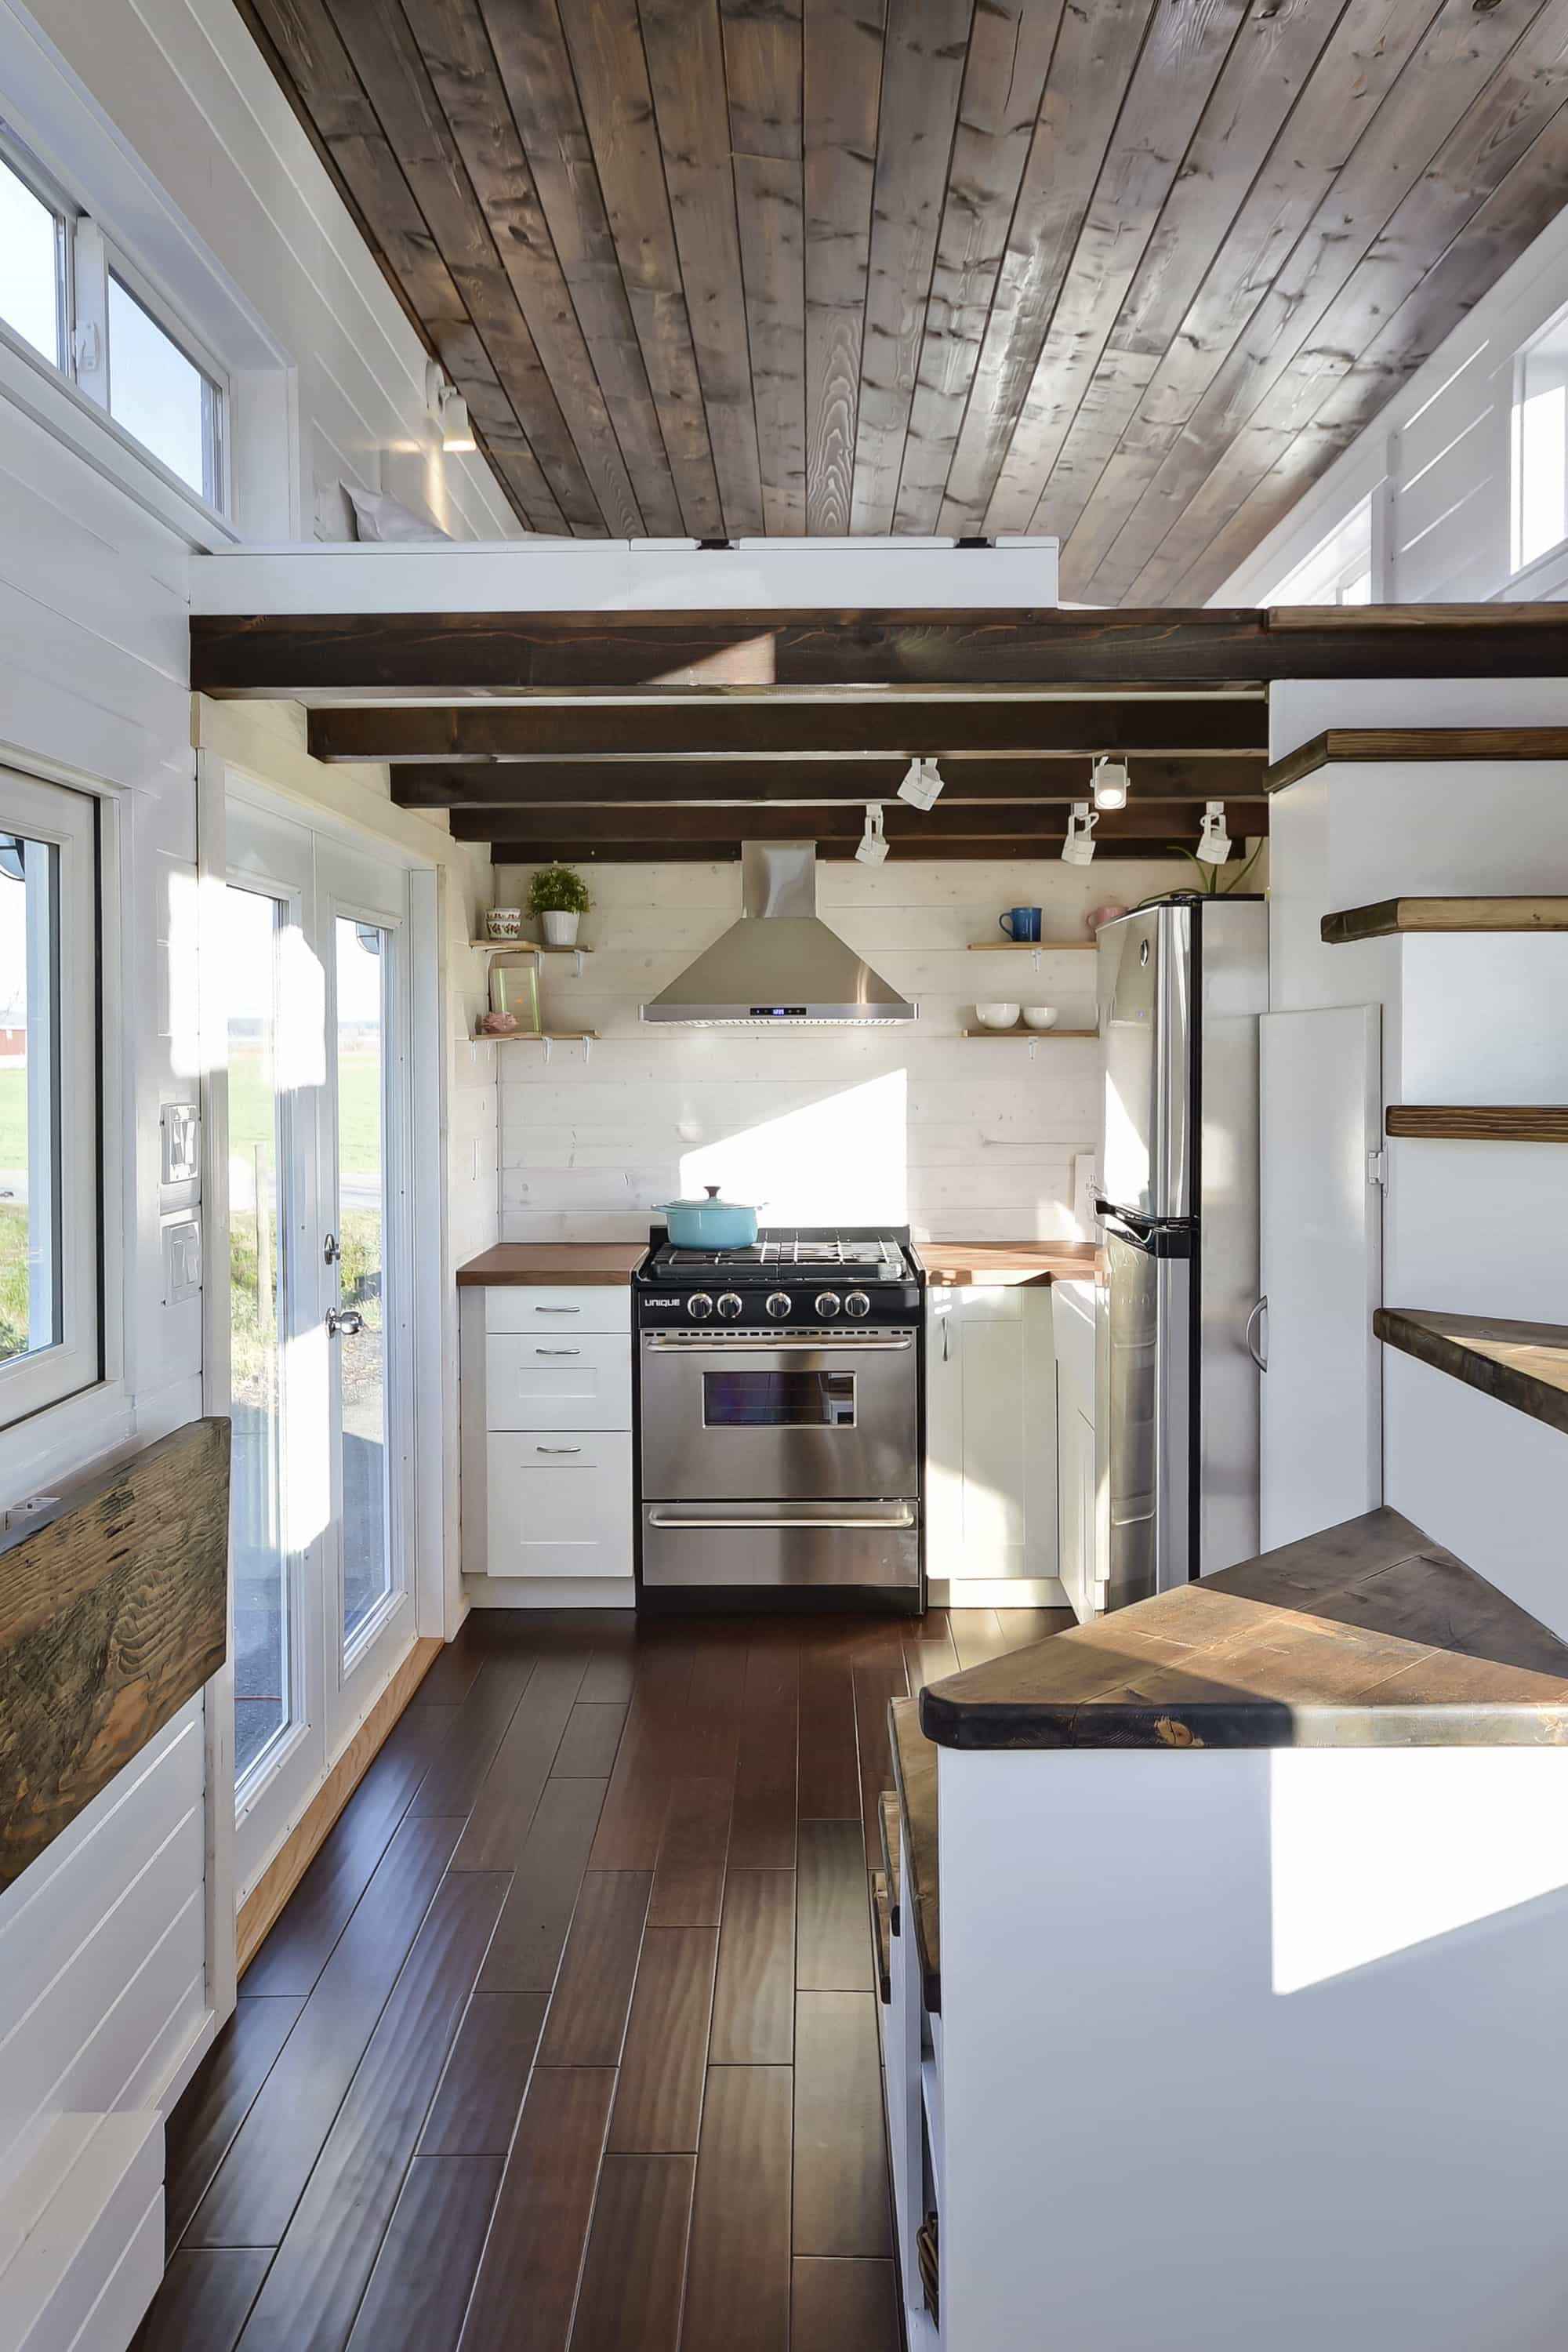 Custom Build your 24ft Tiny home Tiny House for Us